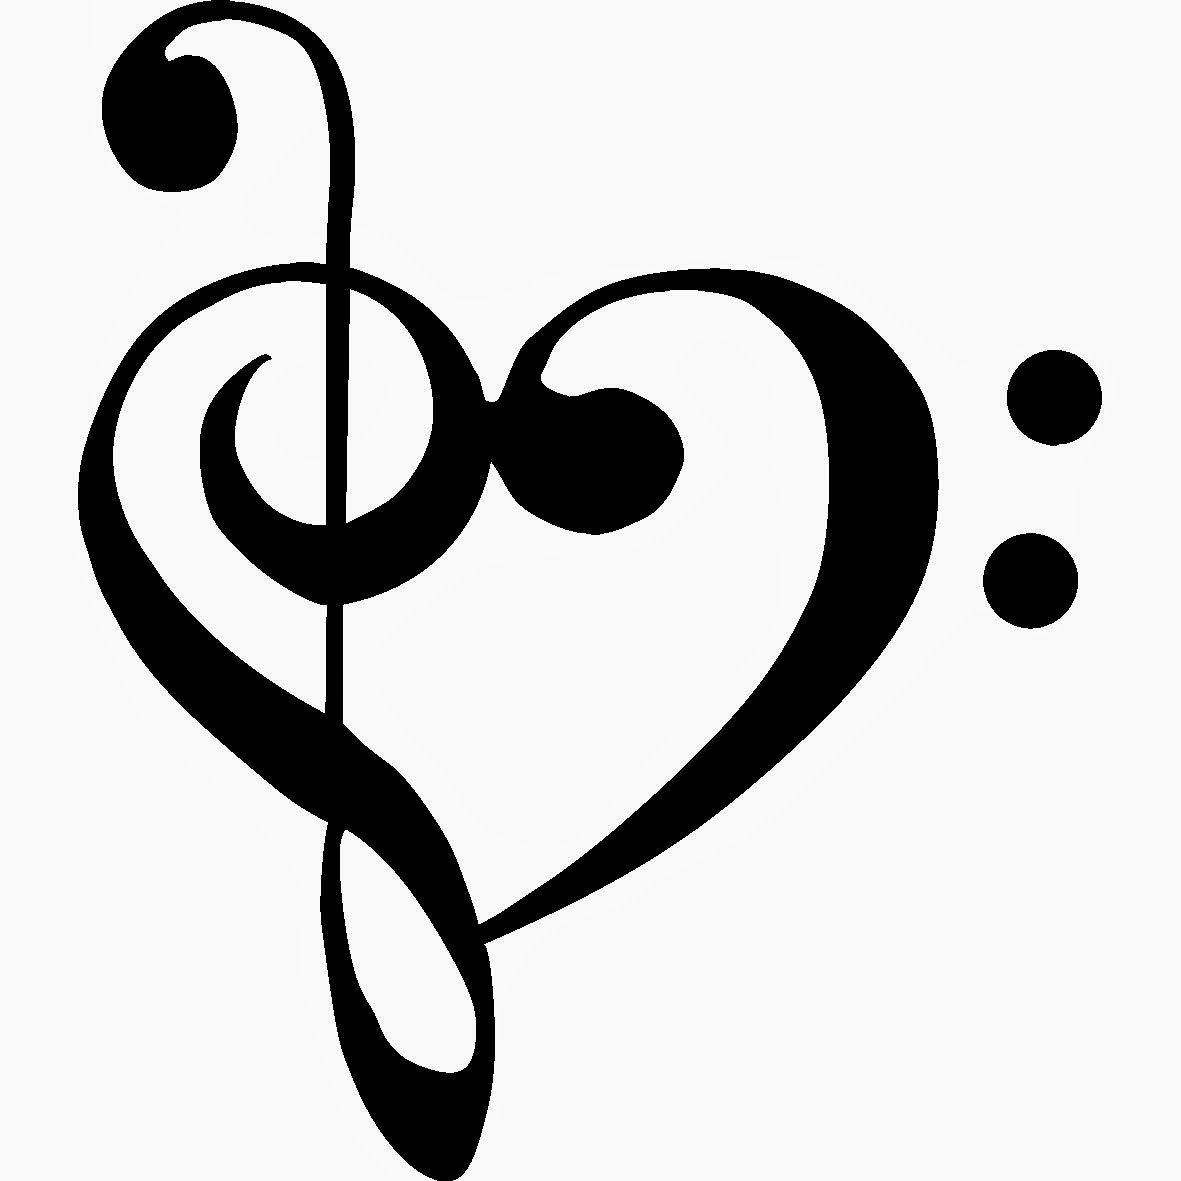 Music note tattoos artwork music note heart tattoo music music note tattoos artwork music note heart tattoo buycottarizona Image collections